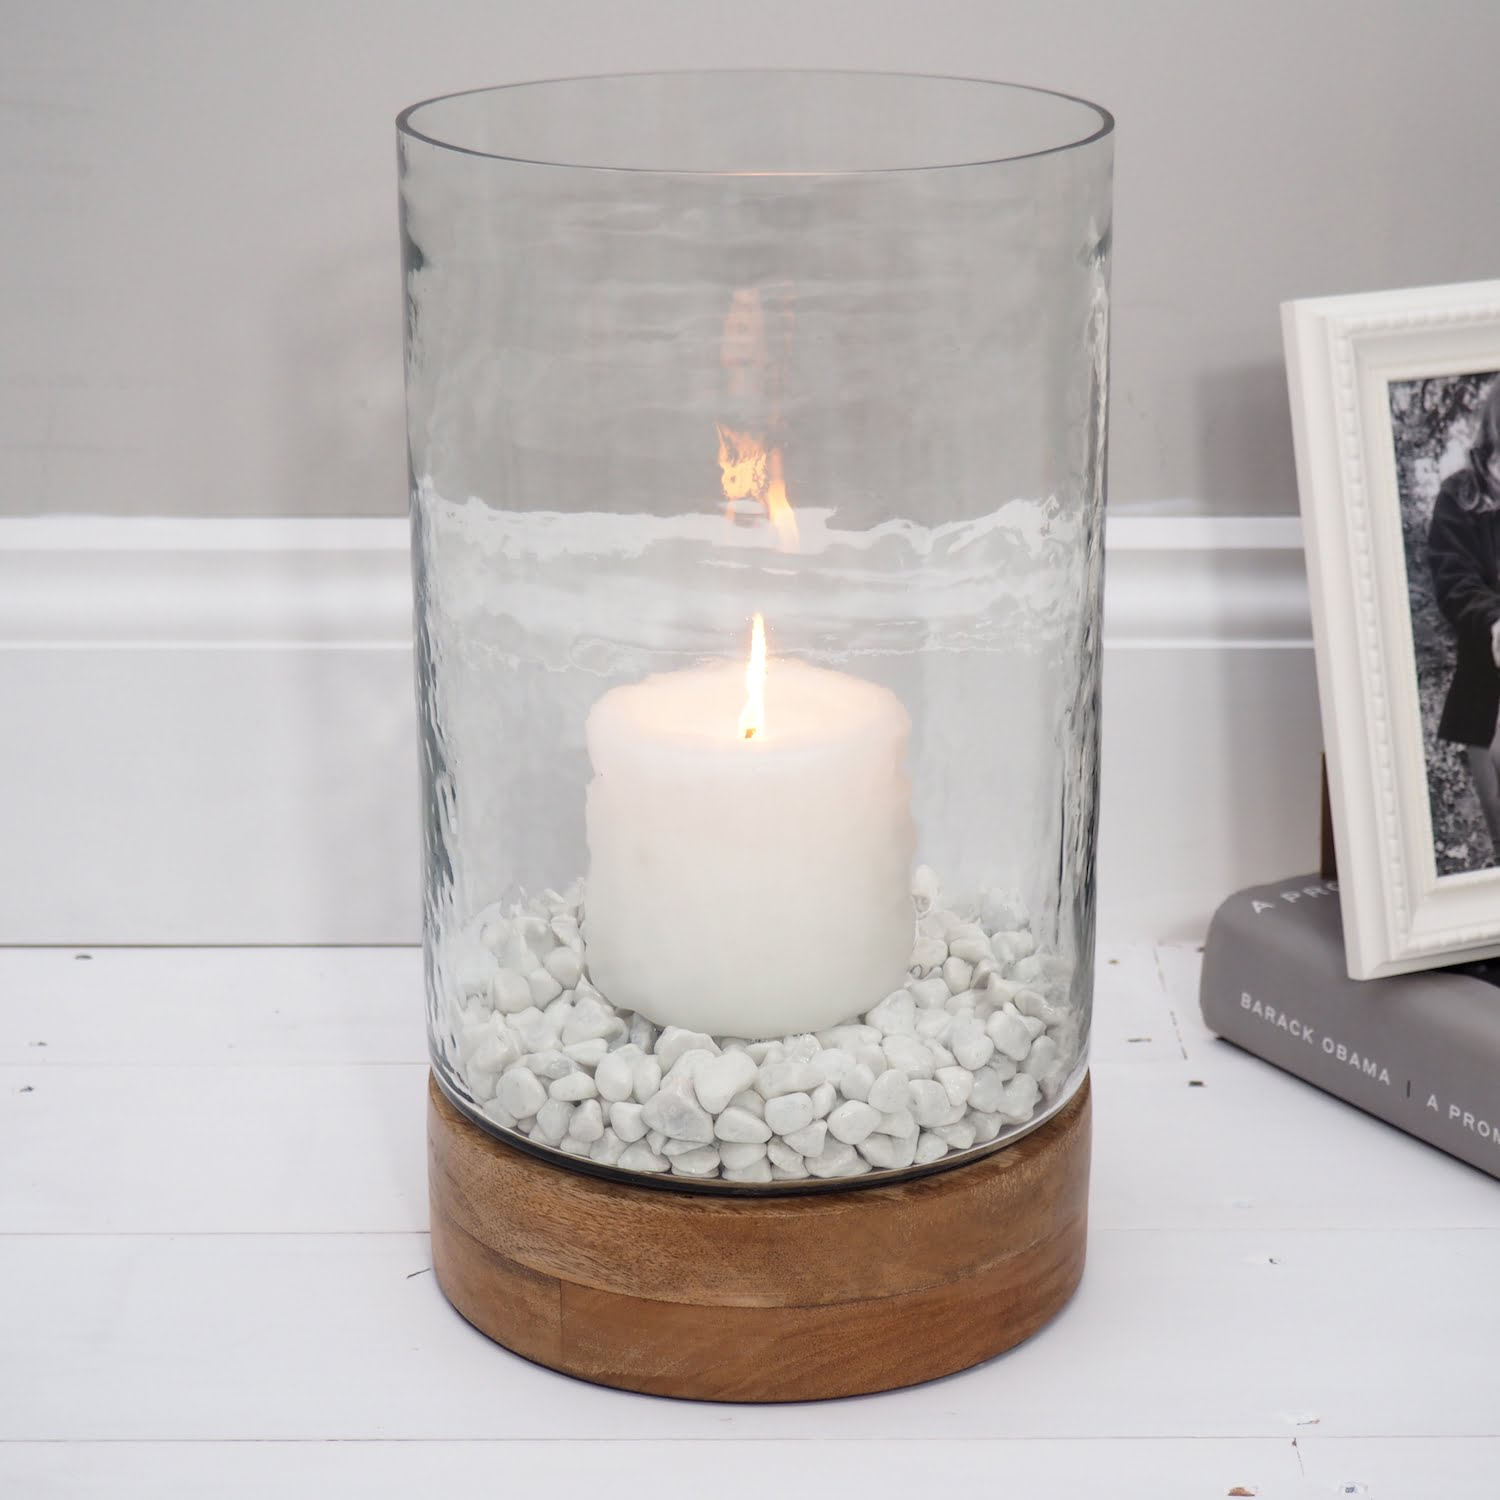 Glass Hurricane Lamps For Candles, Large Decorative Hurricane Lamps